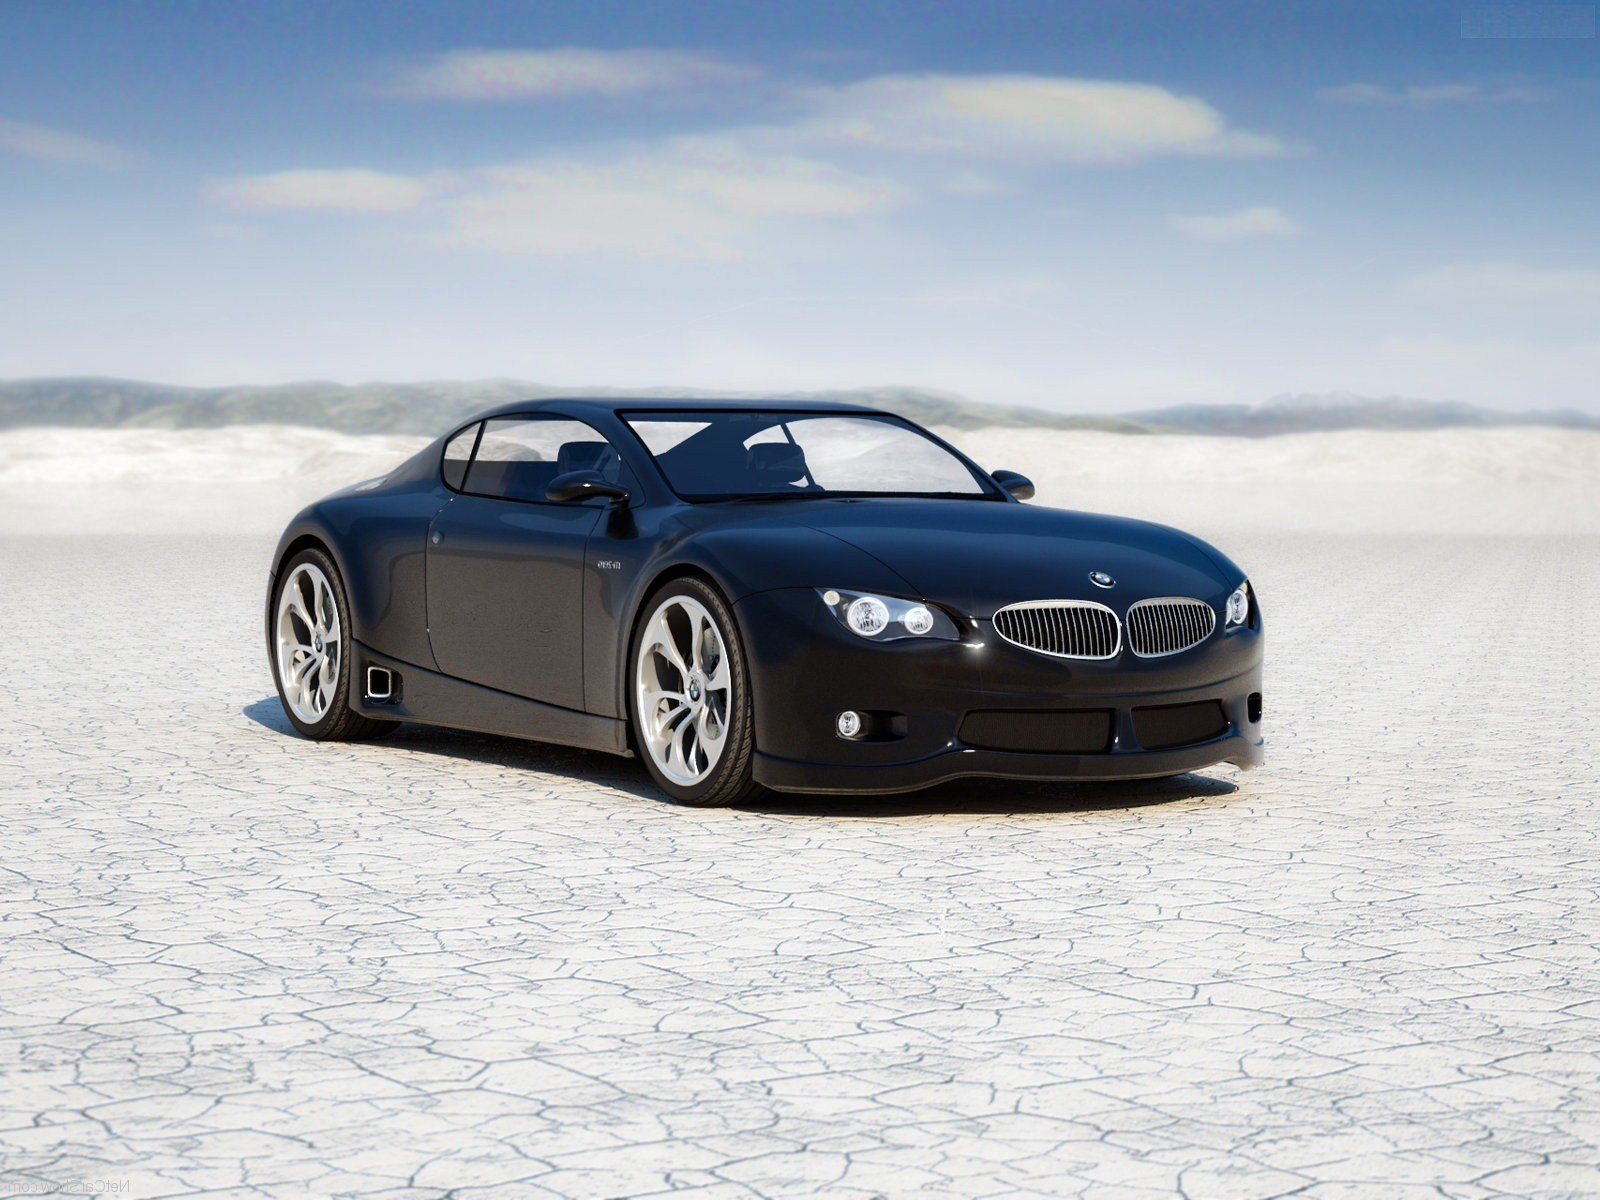 Latest Download Bmw Car Hd Wallpaper Free Download Gallery Free Download